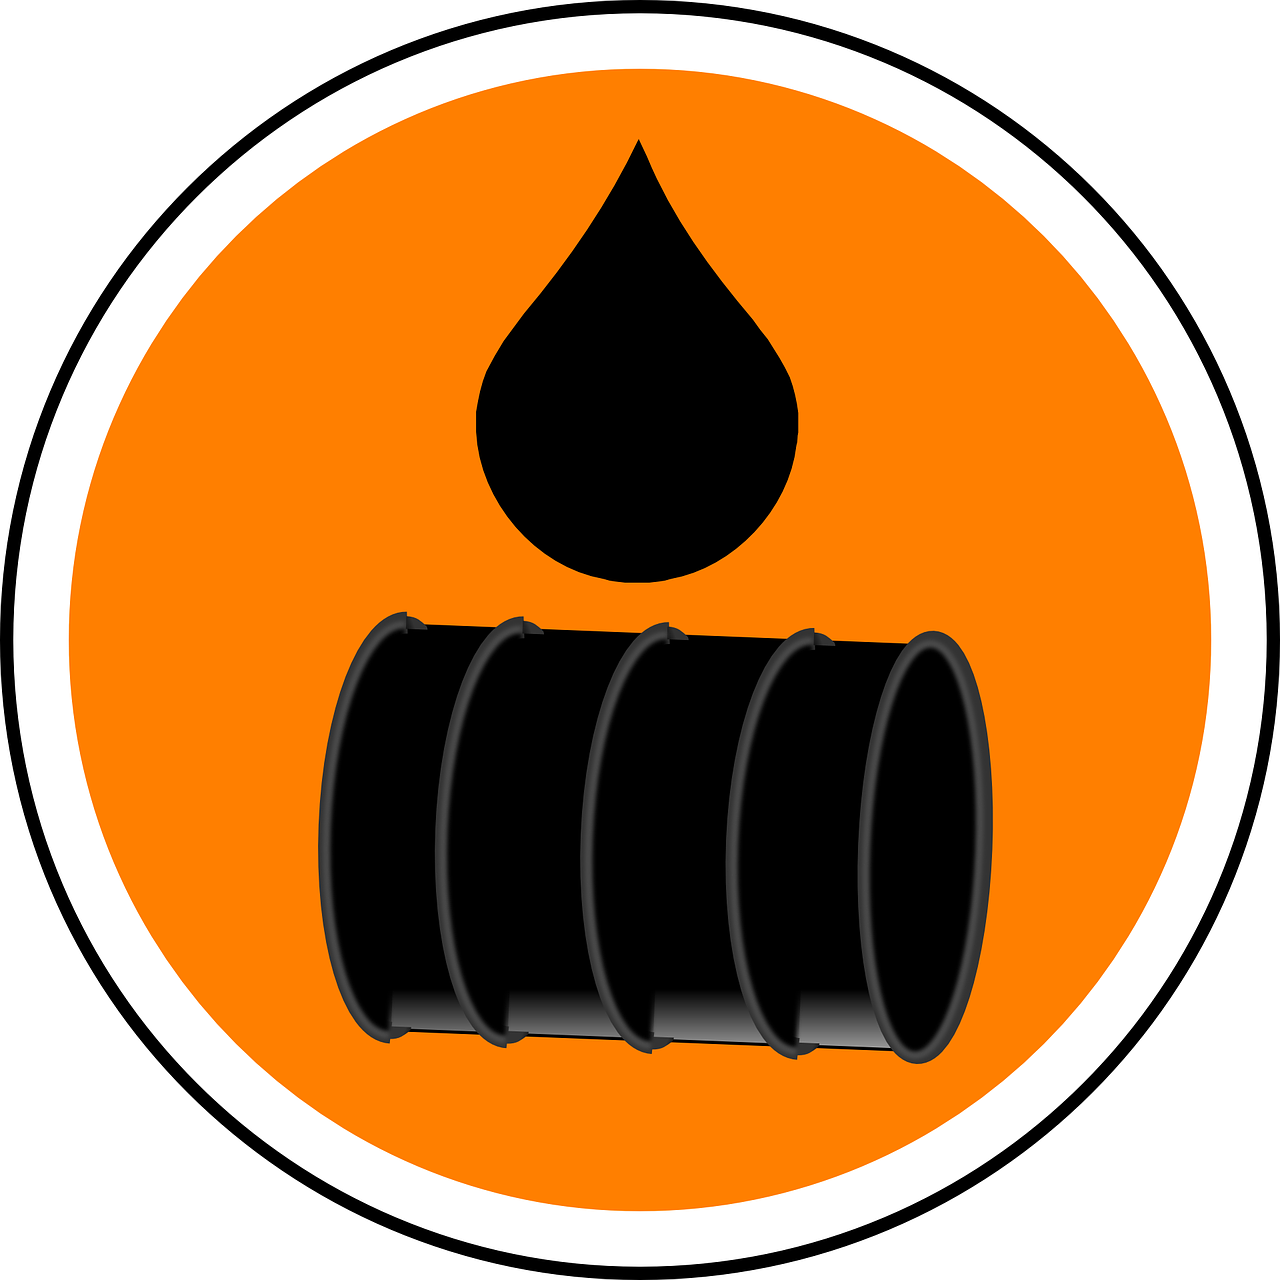 Oil clipart spilled chemical. Spill prevention control countermeasure